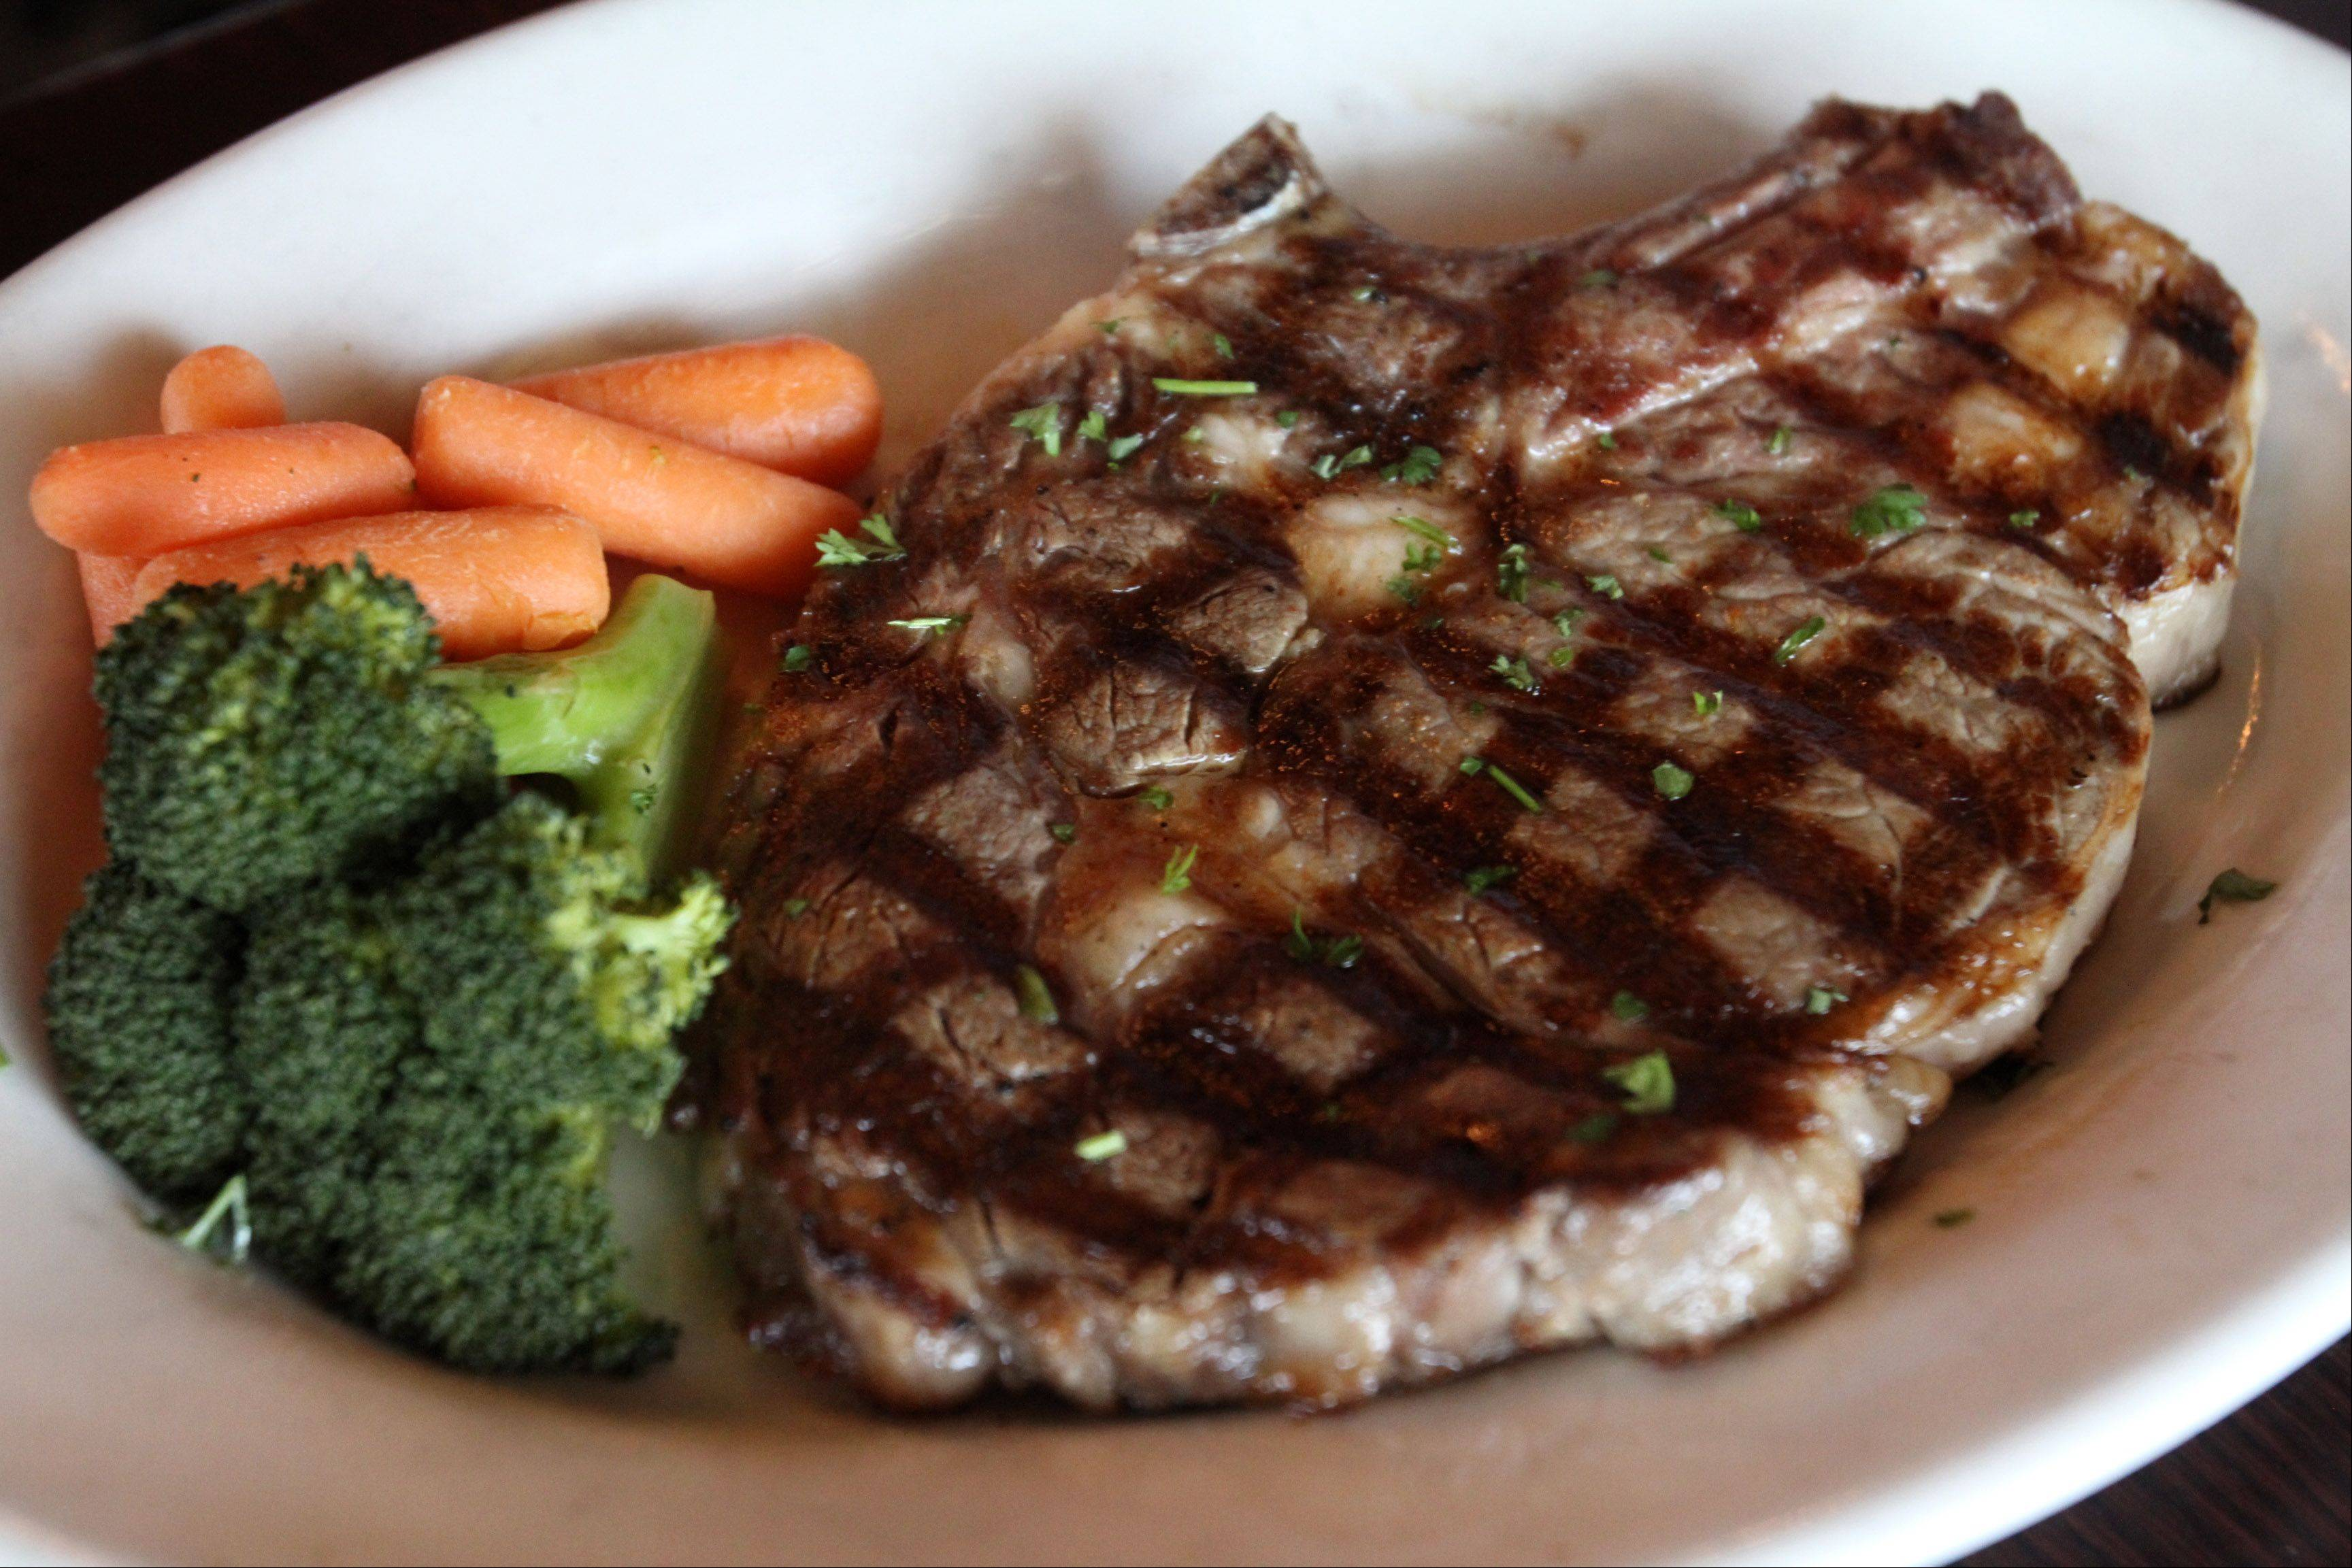 Bone-in rib-eye is one of the steak choices at Black Cow Kitchen & Bar.